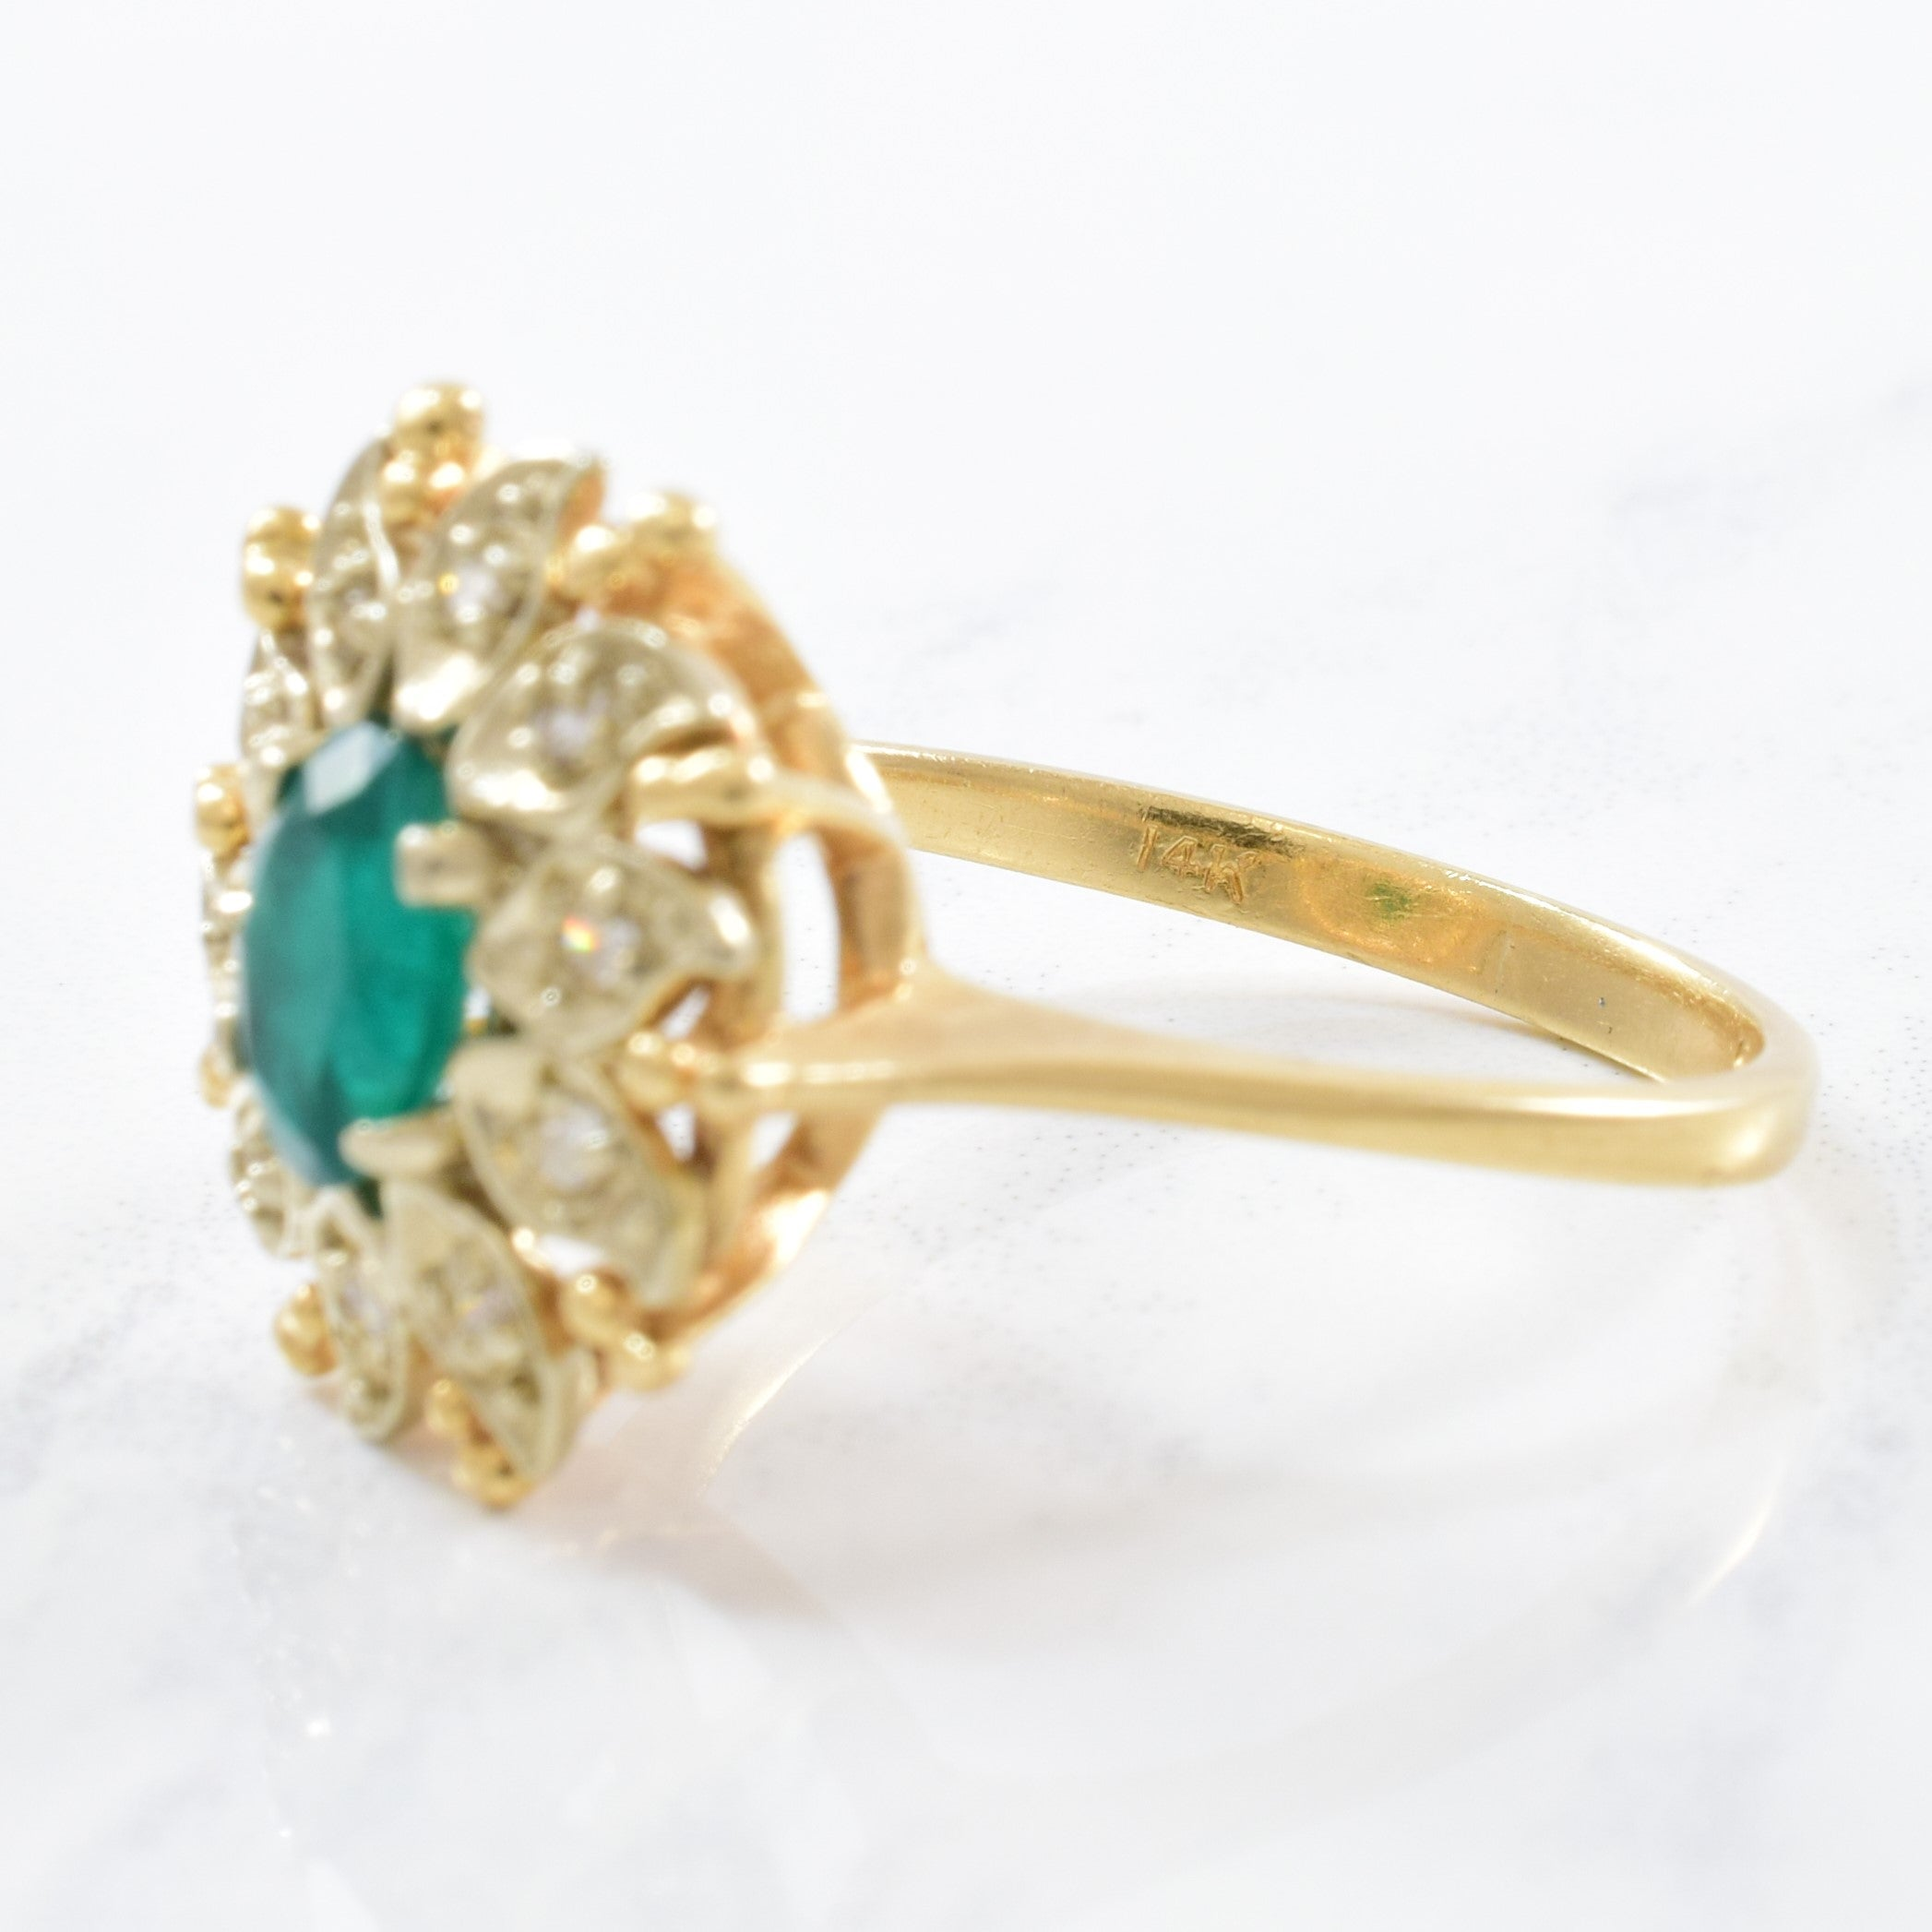 'Courtship' Floral Diamond Halo Emerald Ring Circa 1940s | 0.12ctw, 0.55ct | SZ 8 |